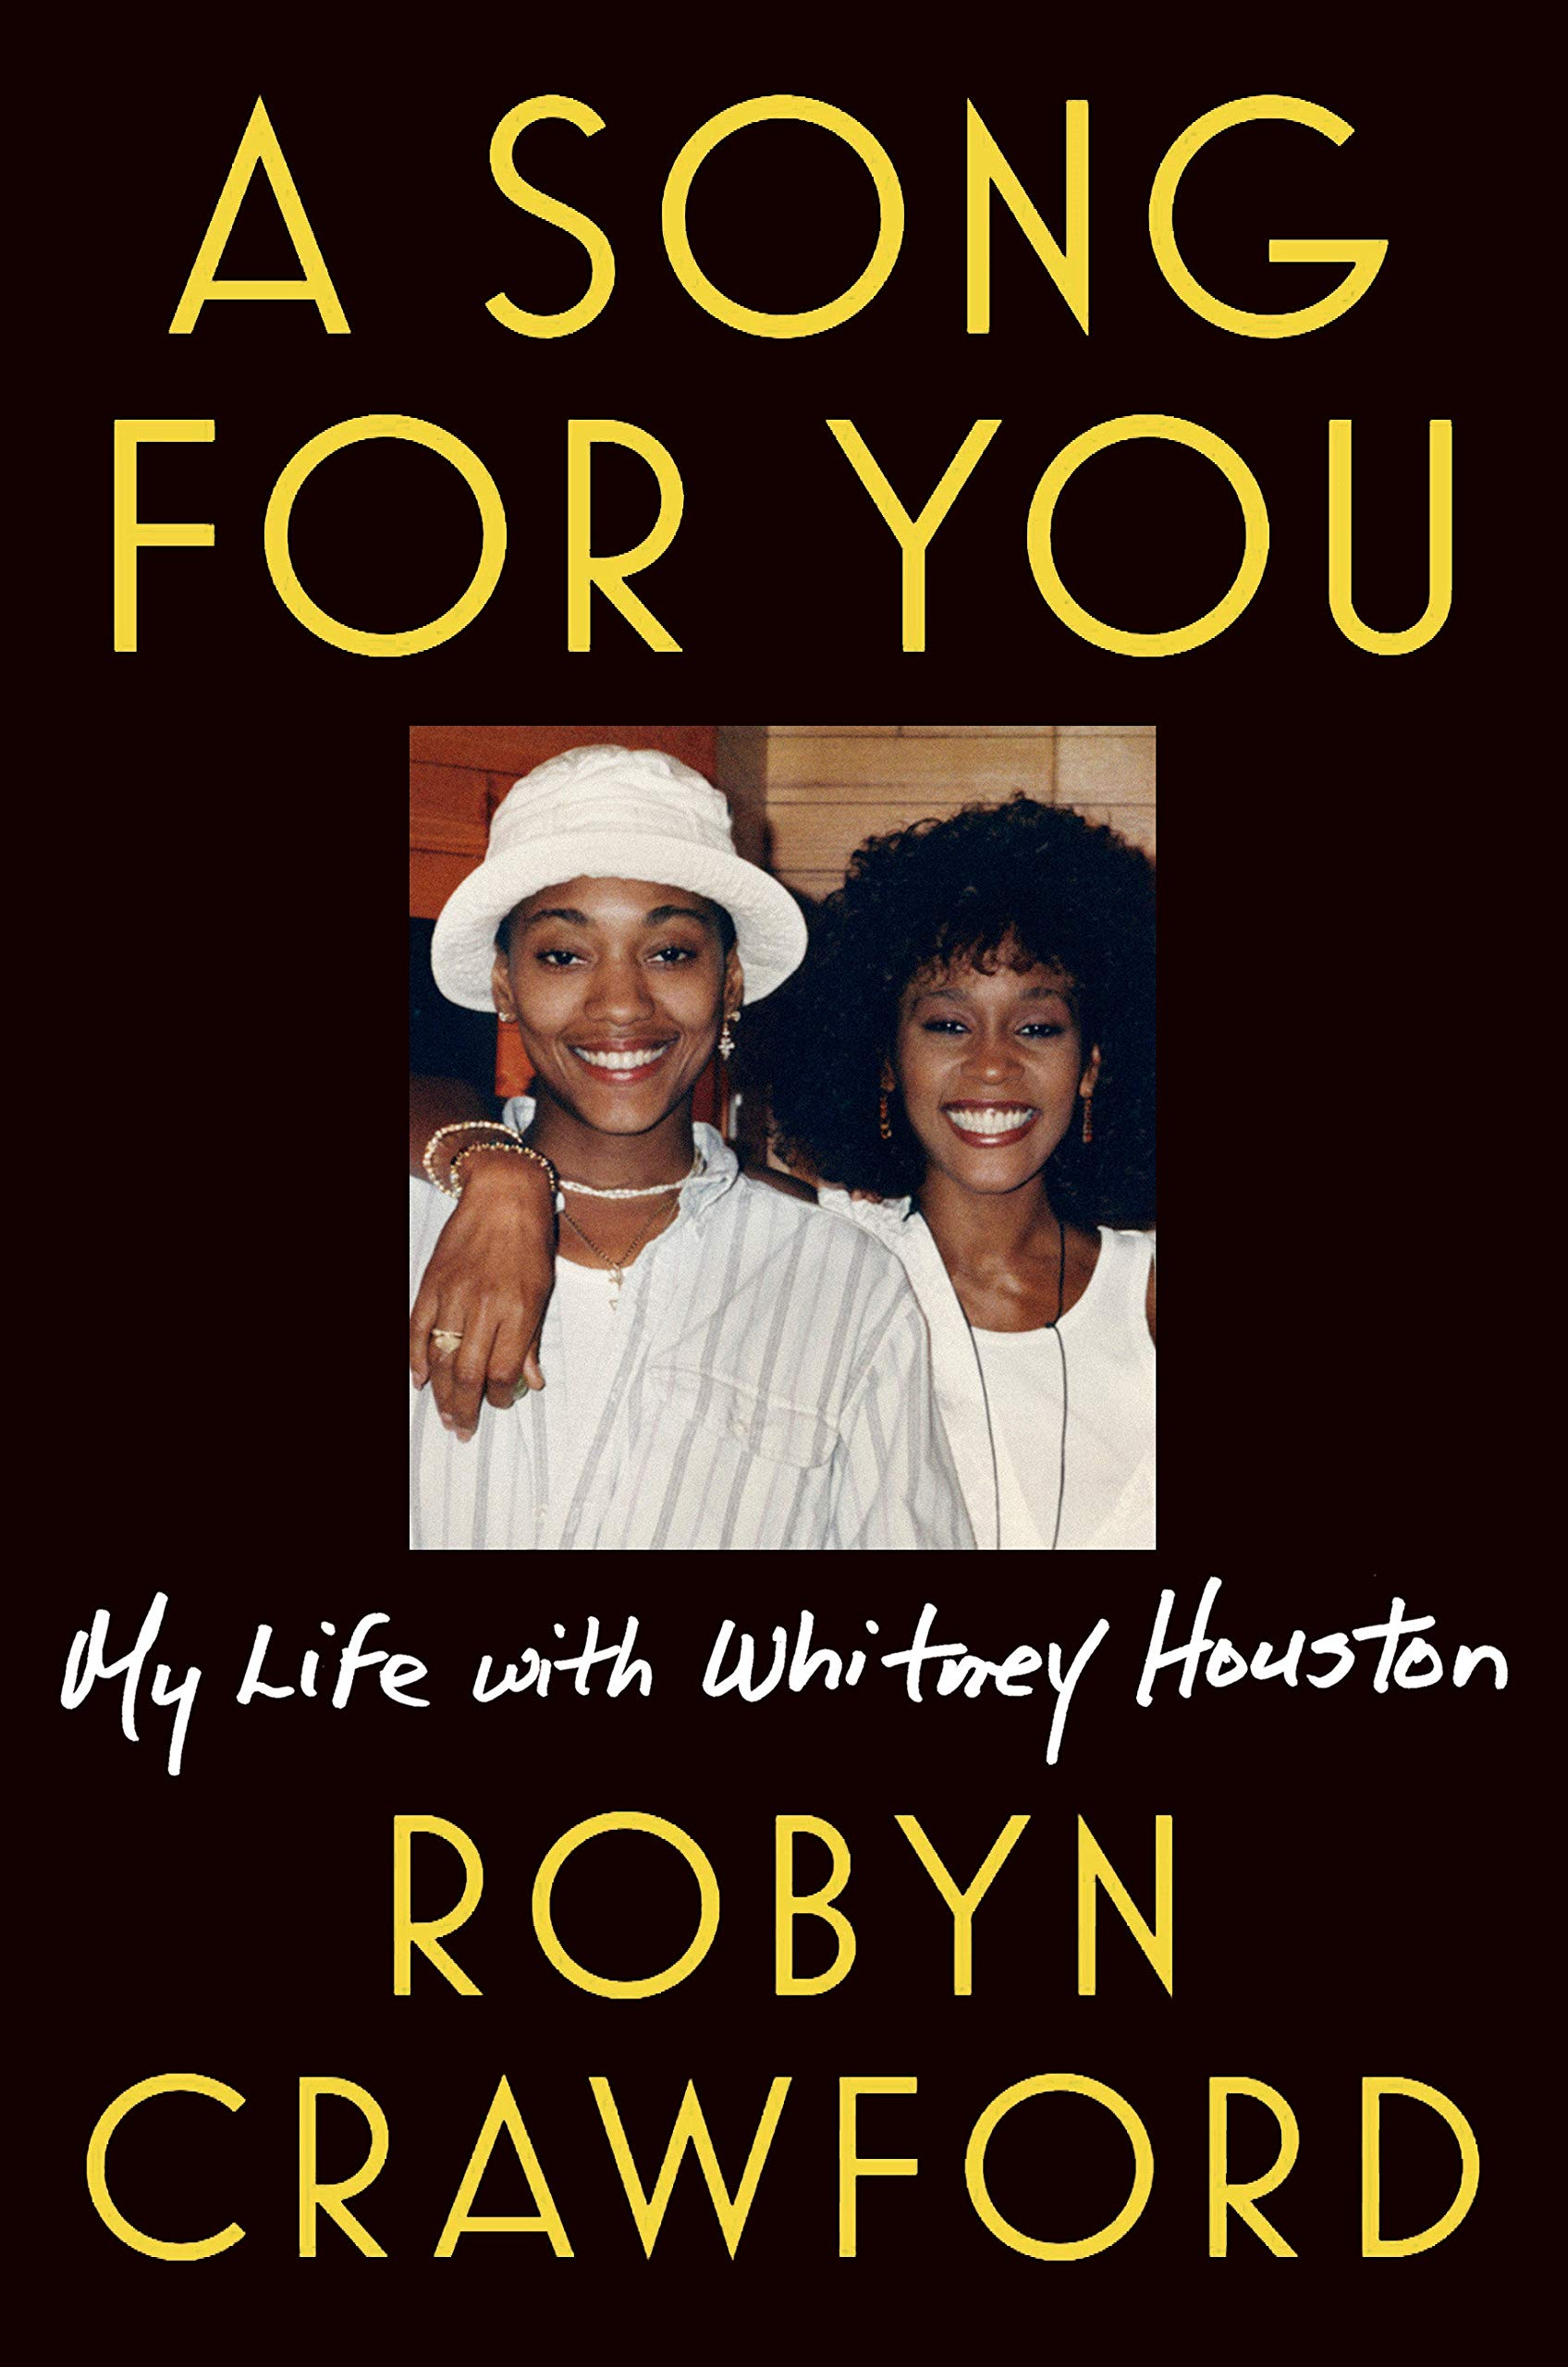 Robyn Crawford book A Song For You